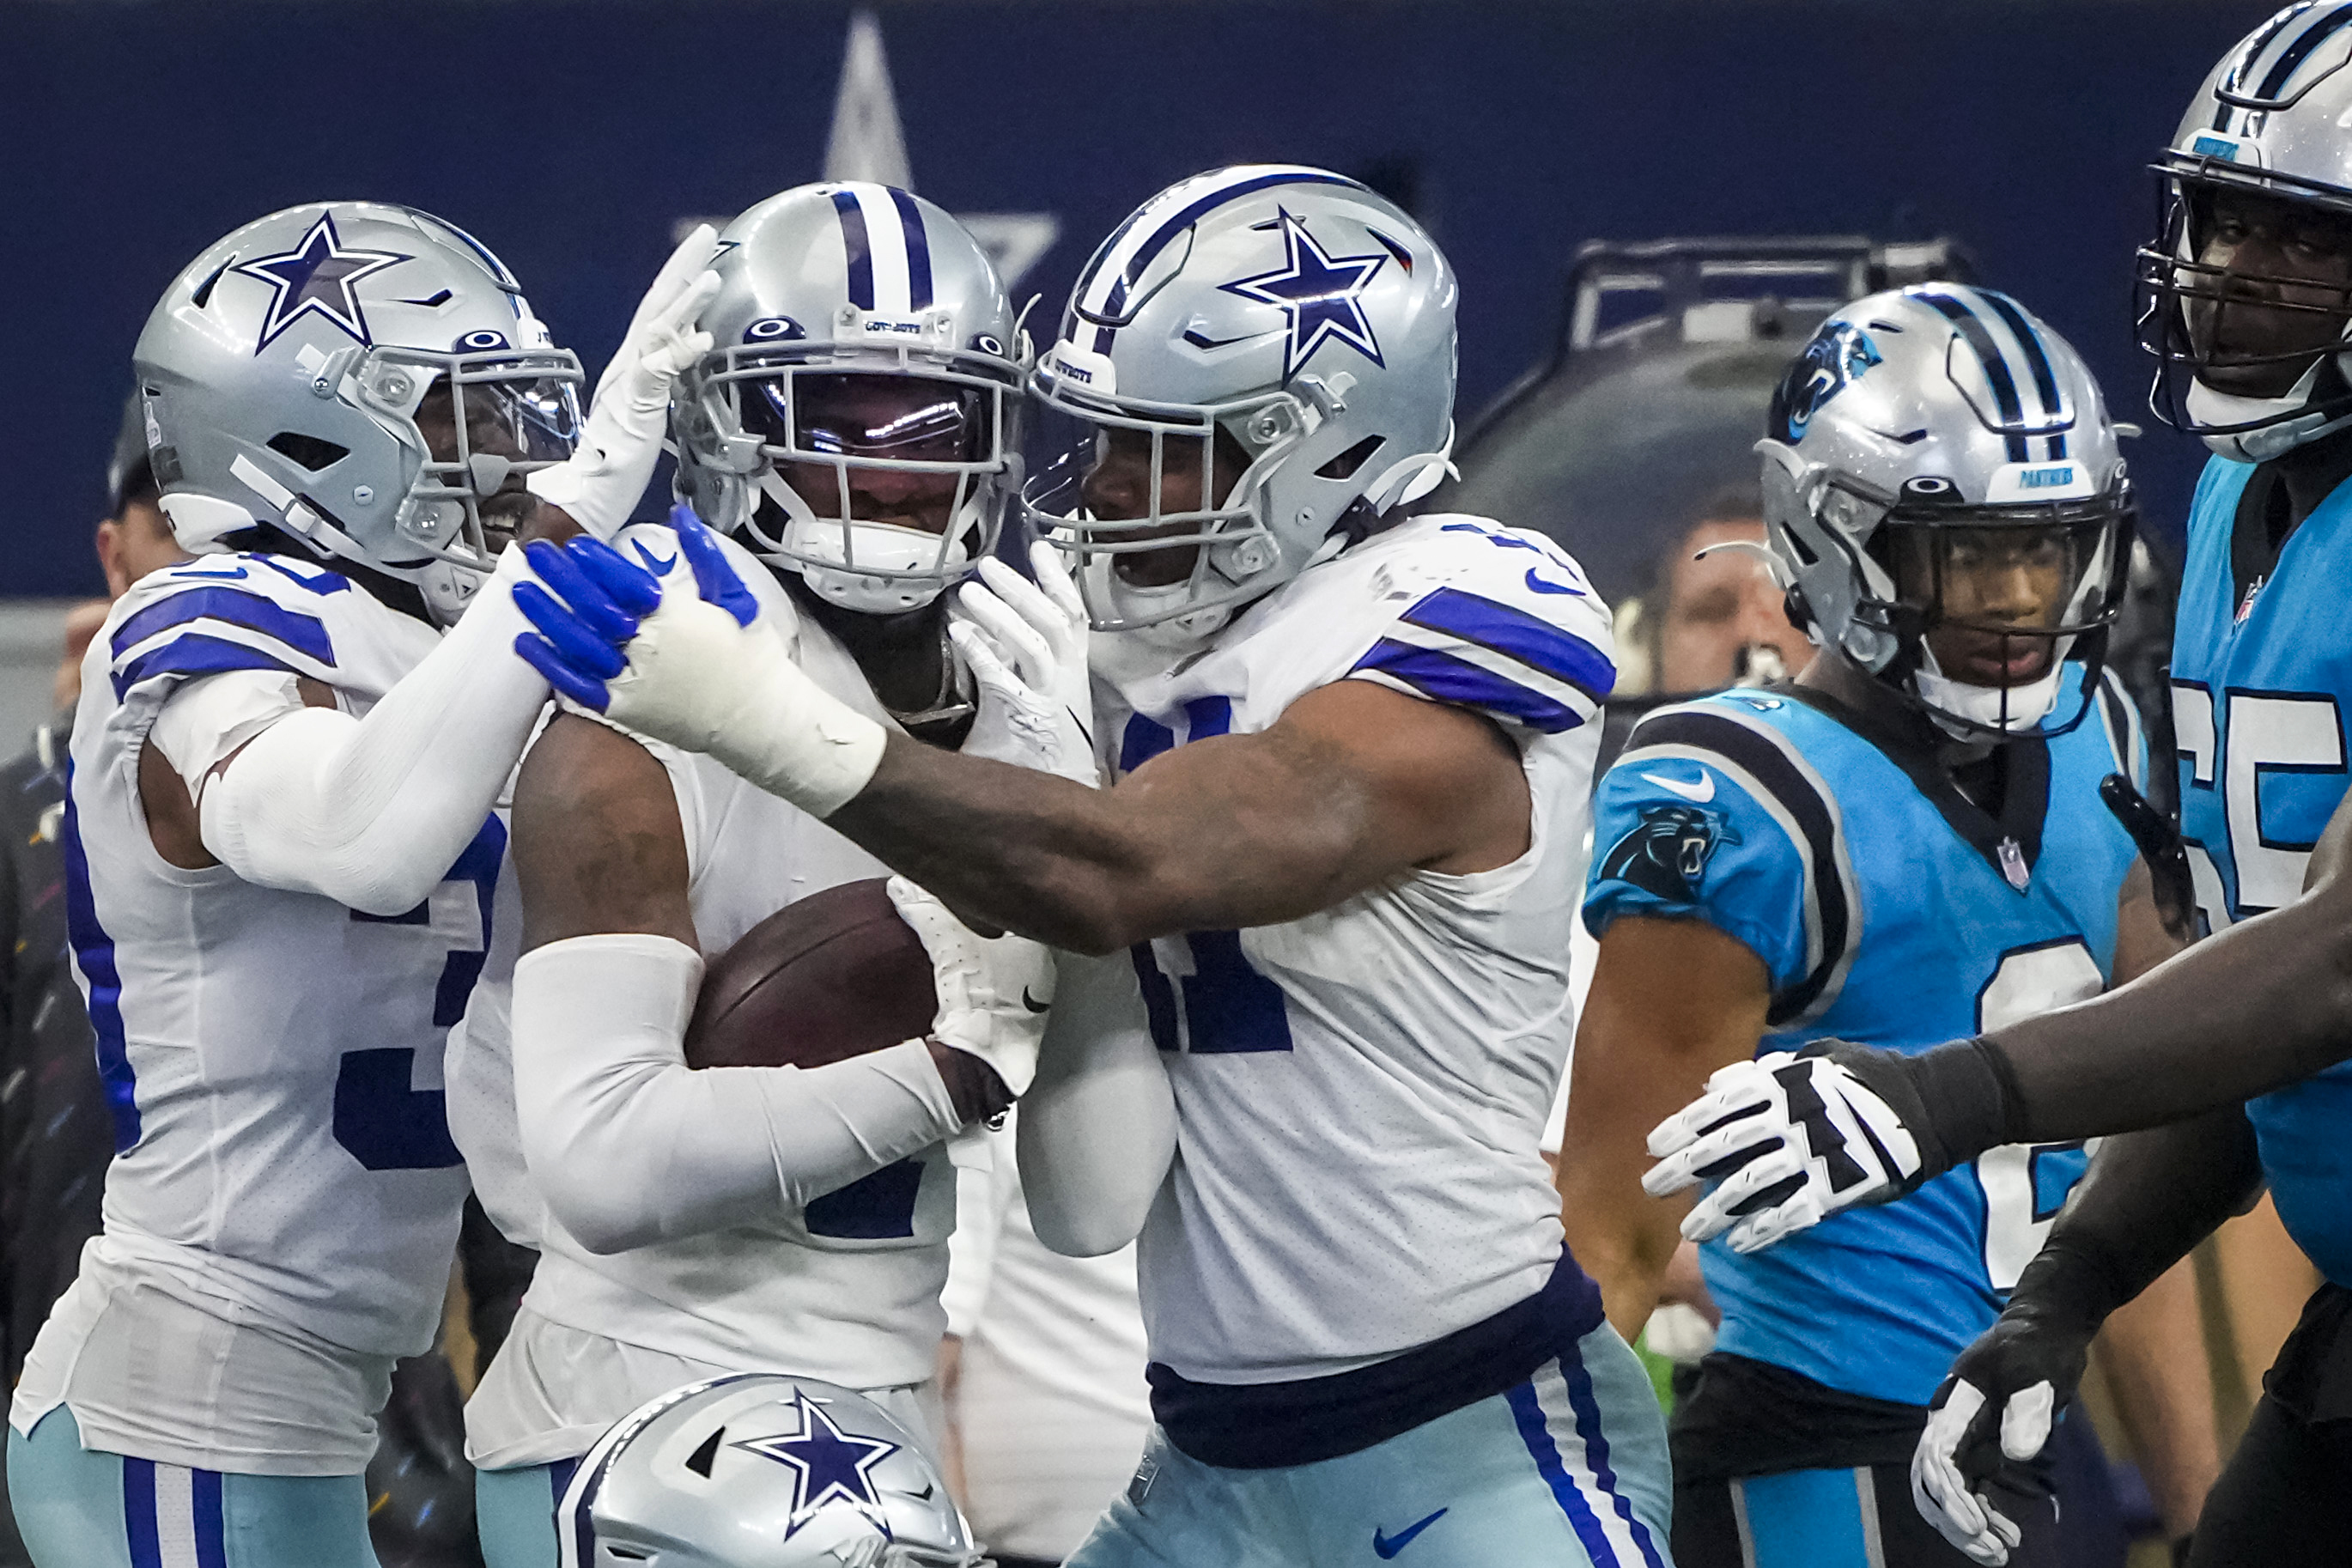 Cowboys sideline report: When did Dallas CB Trevon Diggs receive treatment vs. Panthers?